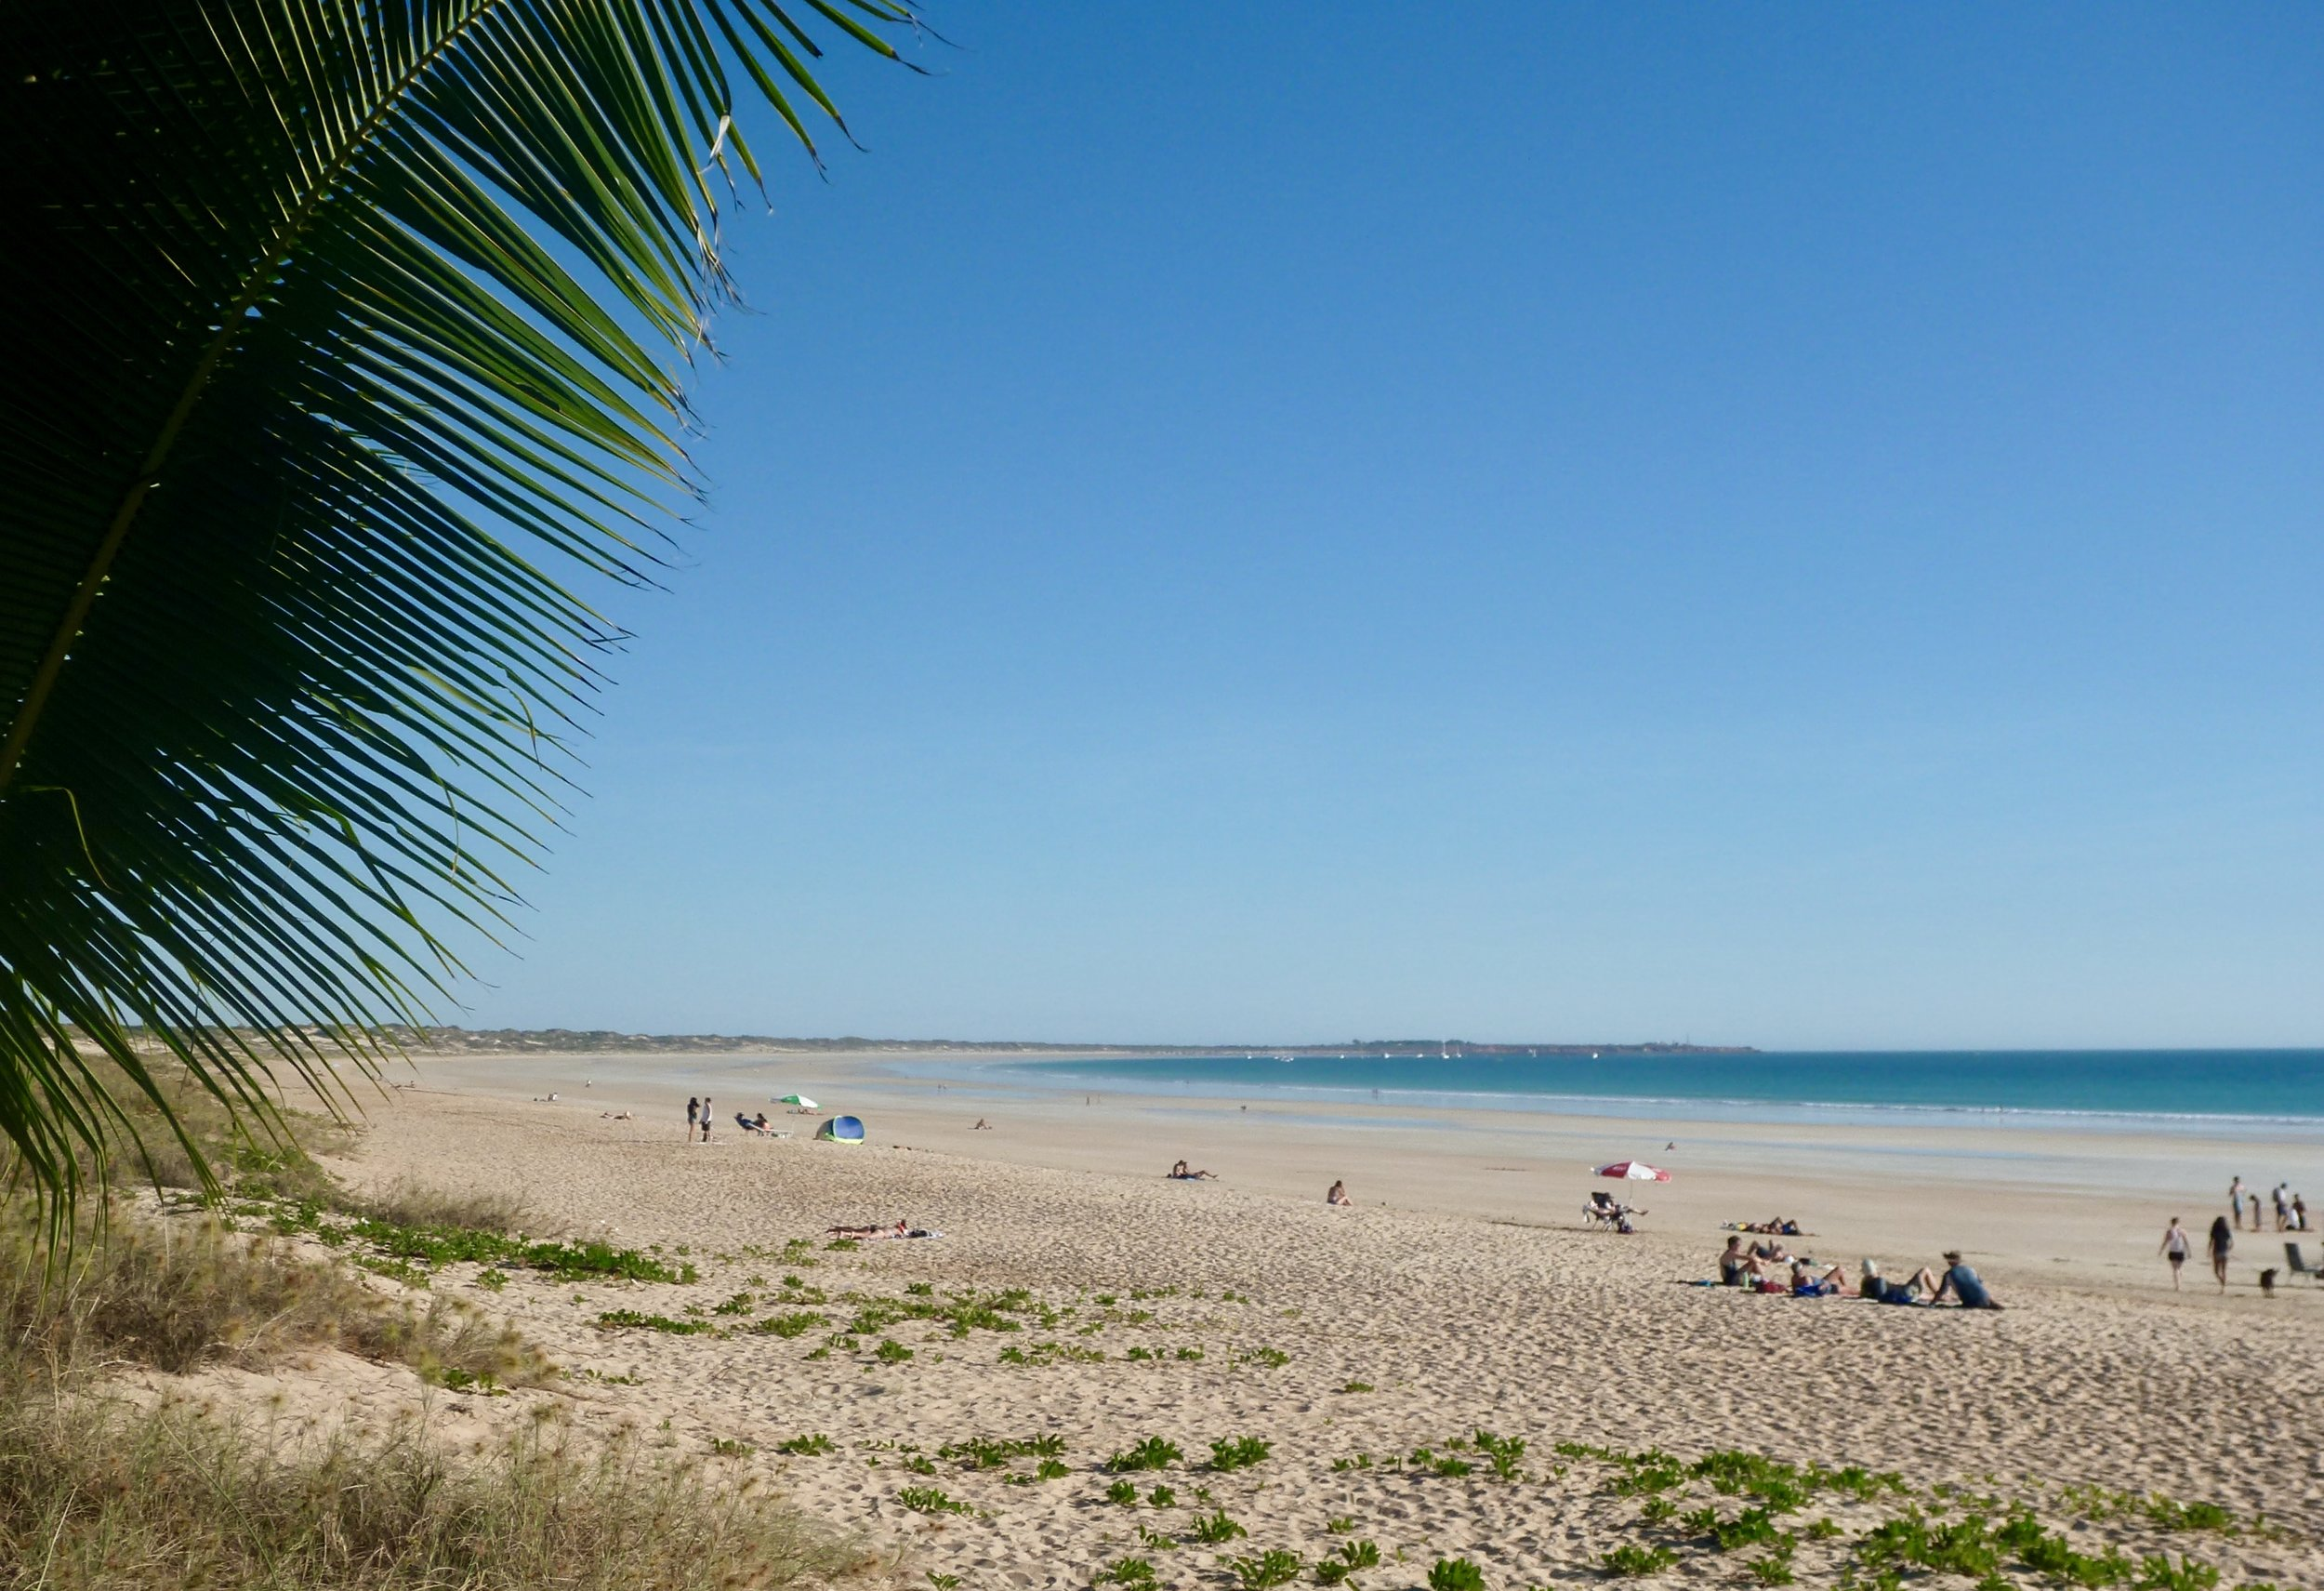 The beautiful expansive Cable Beach - little did I know I would experience such devastating momentary loss in paradise